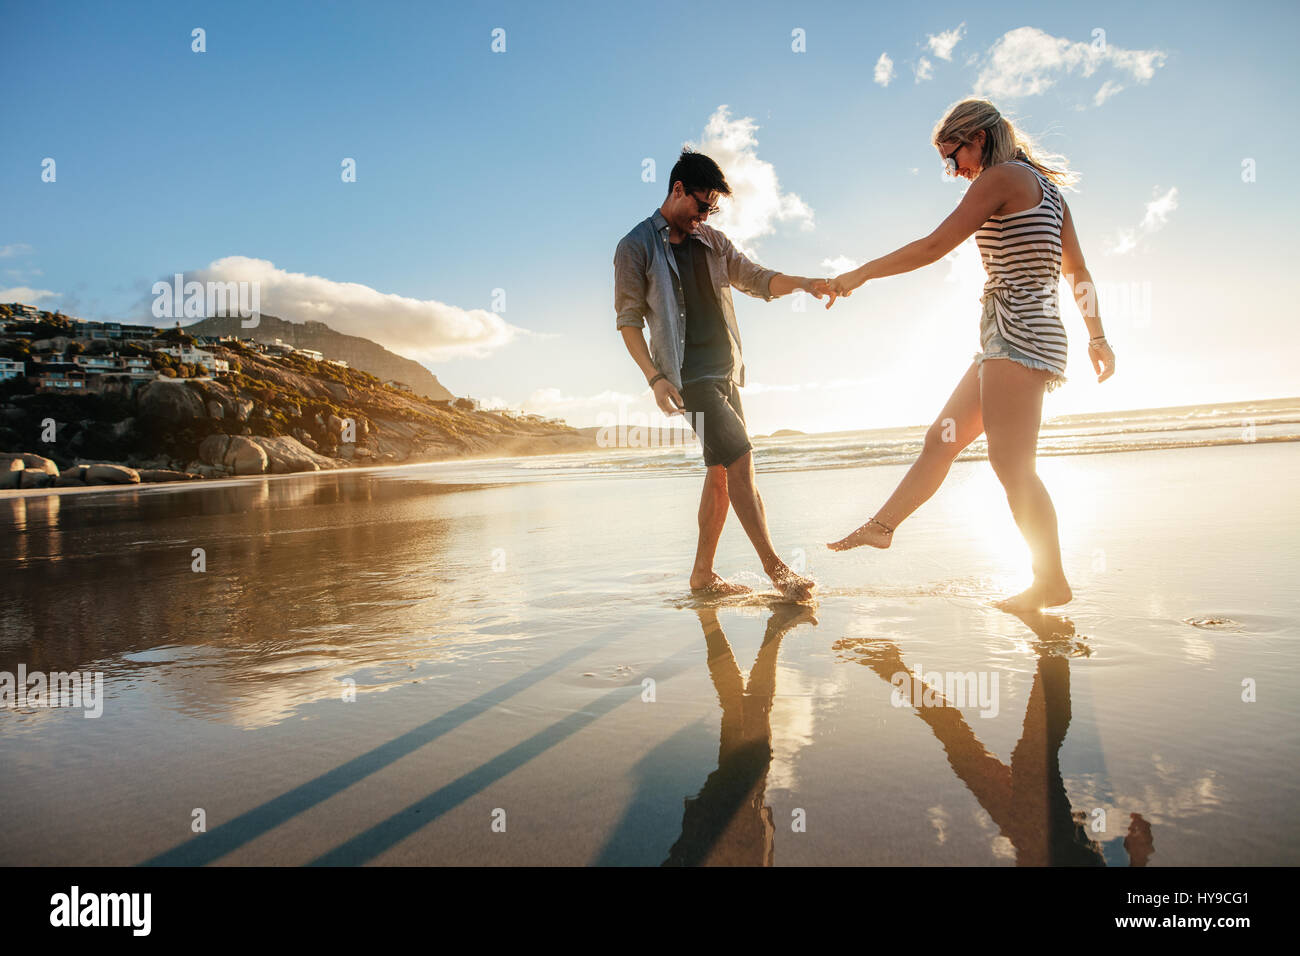 Beau young couple holding hands et jouant sur la rive. Happy young couple in love s'amusant sur la plage. Photo Stock